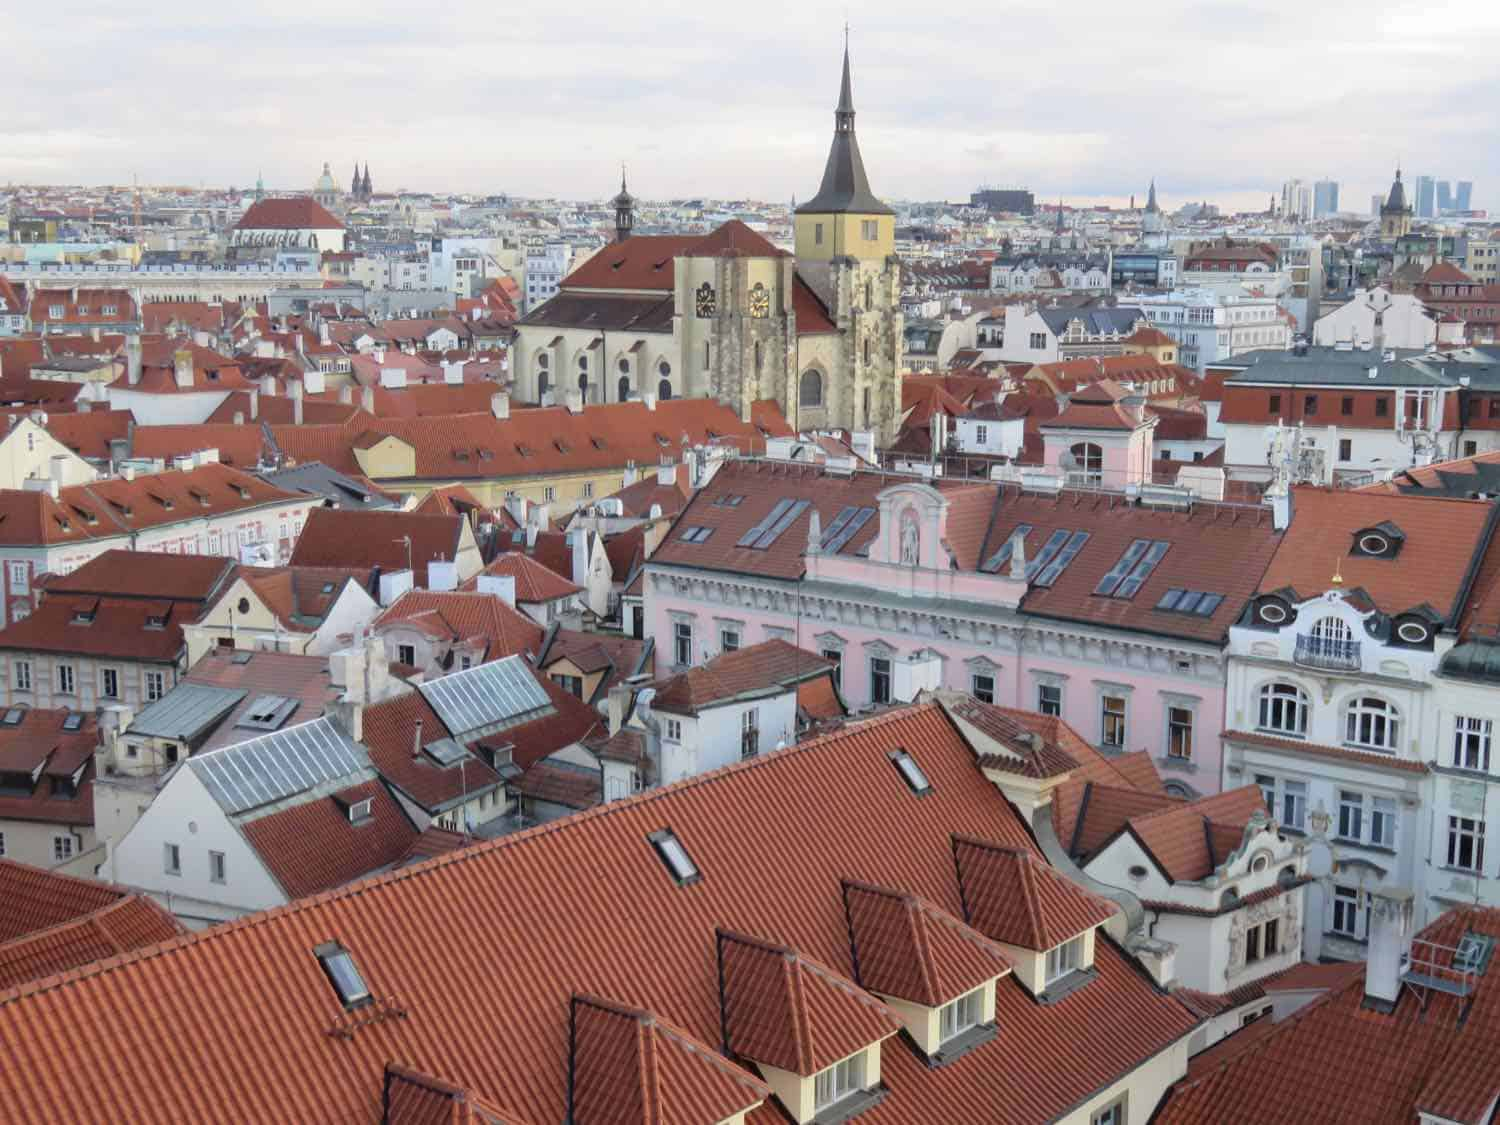 A Prague view that overlooks red tile roofs and church towers